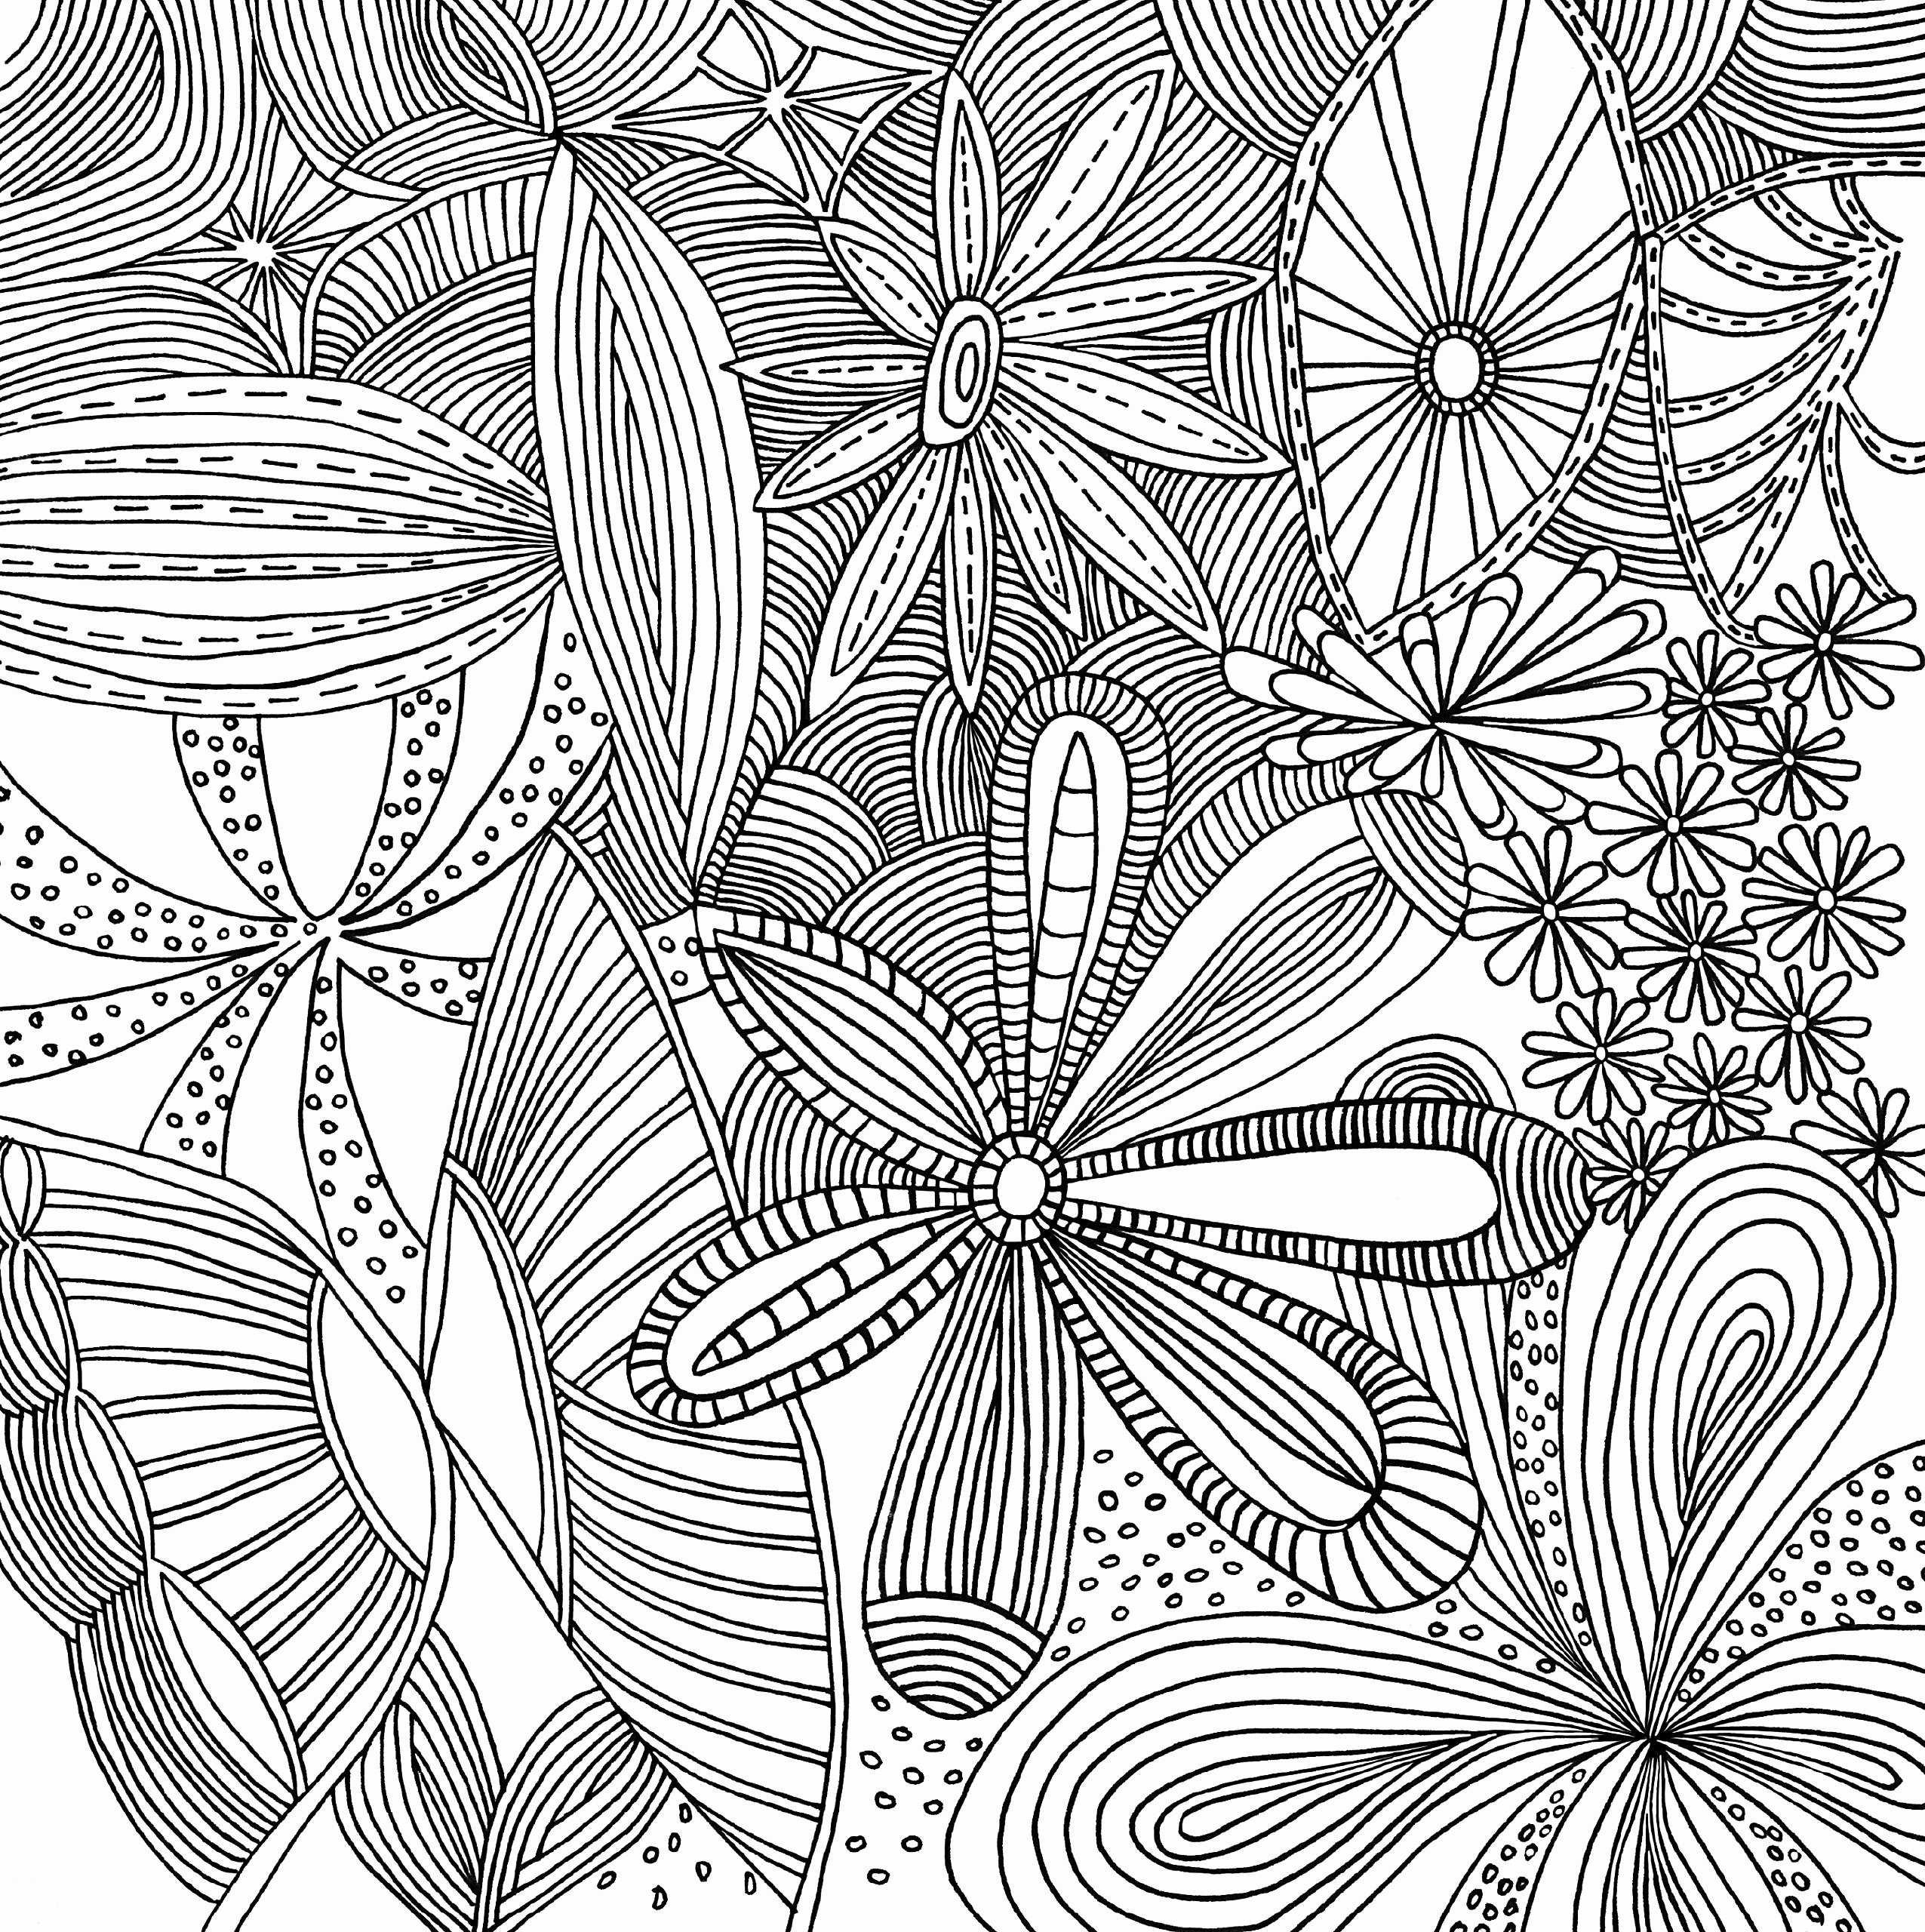 mindfulness coloring pages Download-Anxiety Coloring Pages New Fun Coloring Page Part 145 – Fun Time 20 Best 15-k